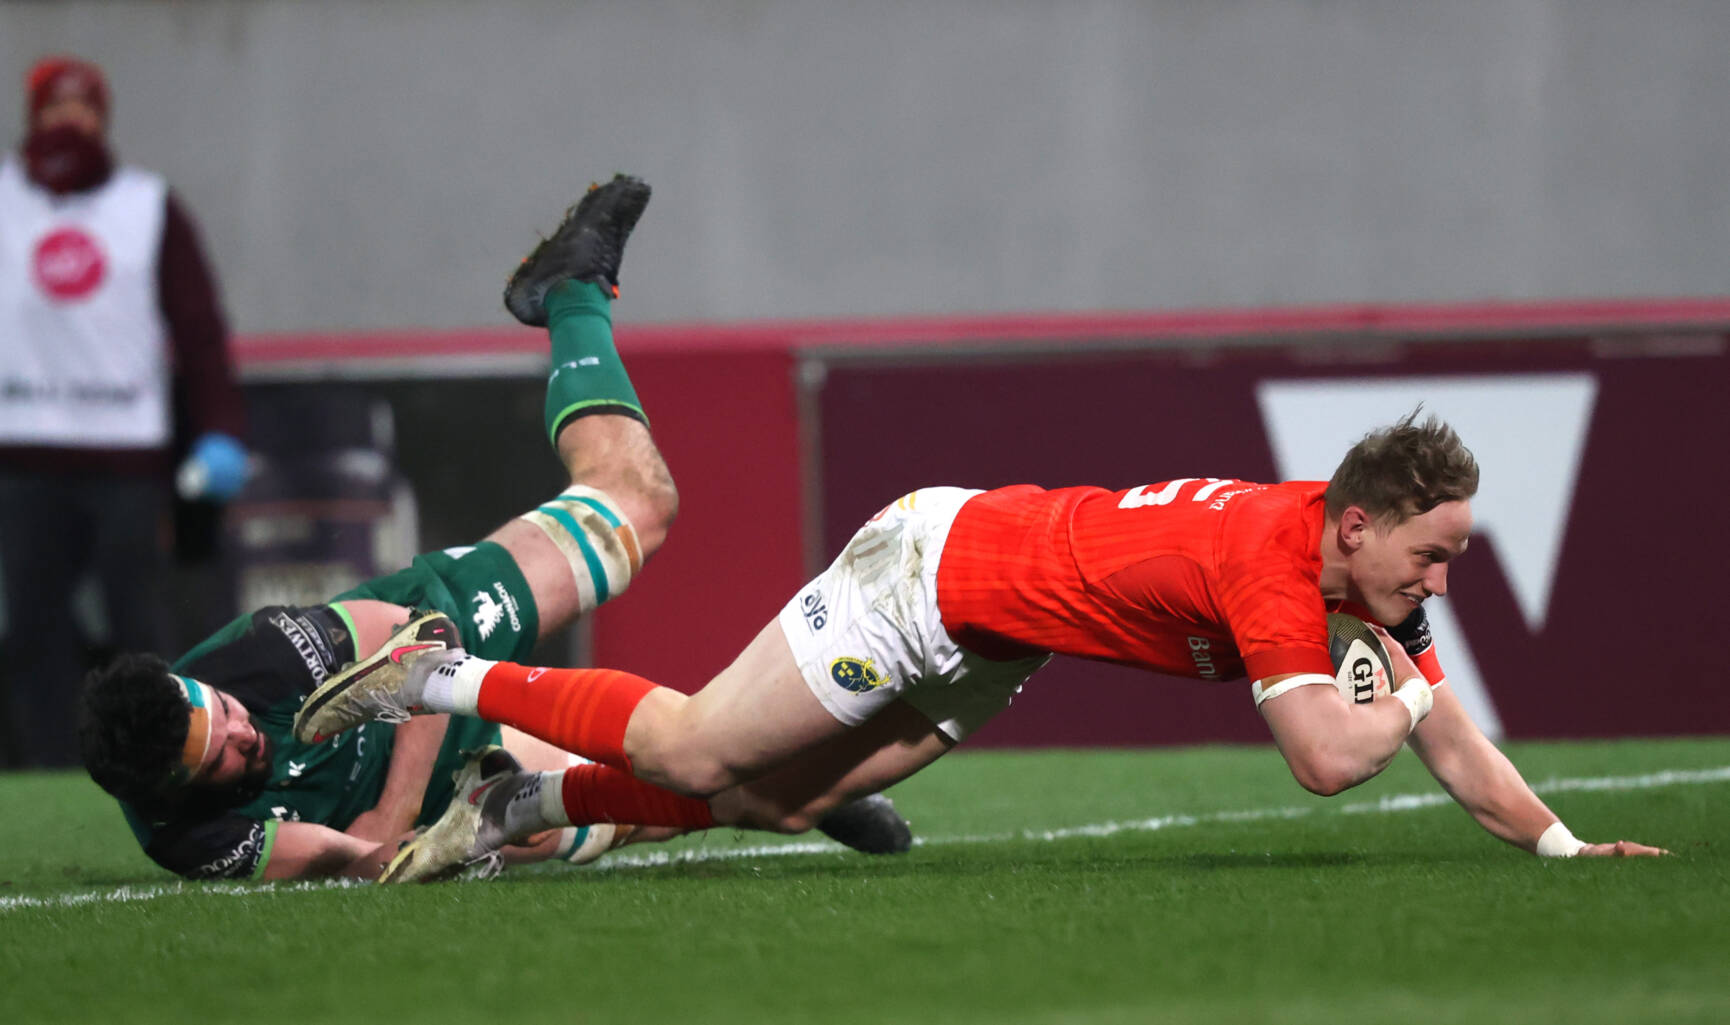 Munster Edge Out Connacht To Book PRO14 Final Place